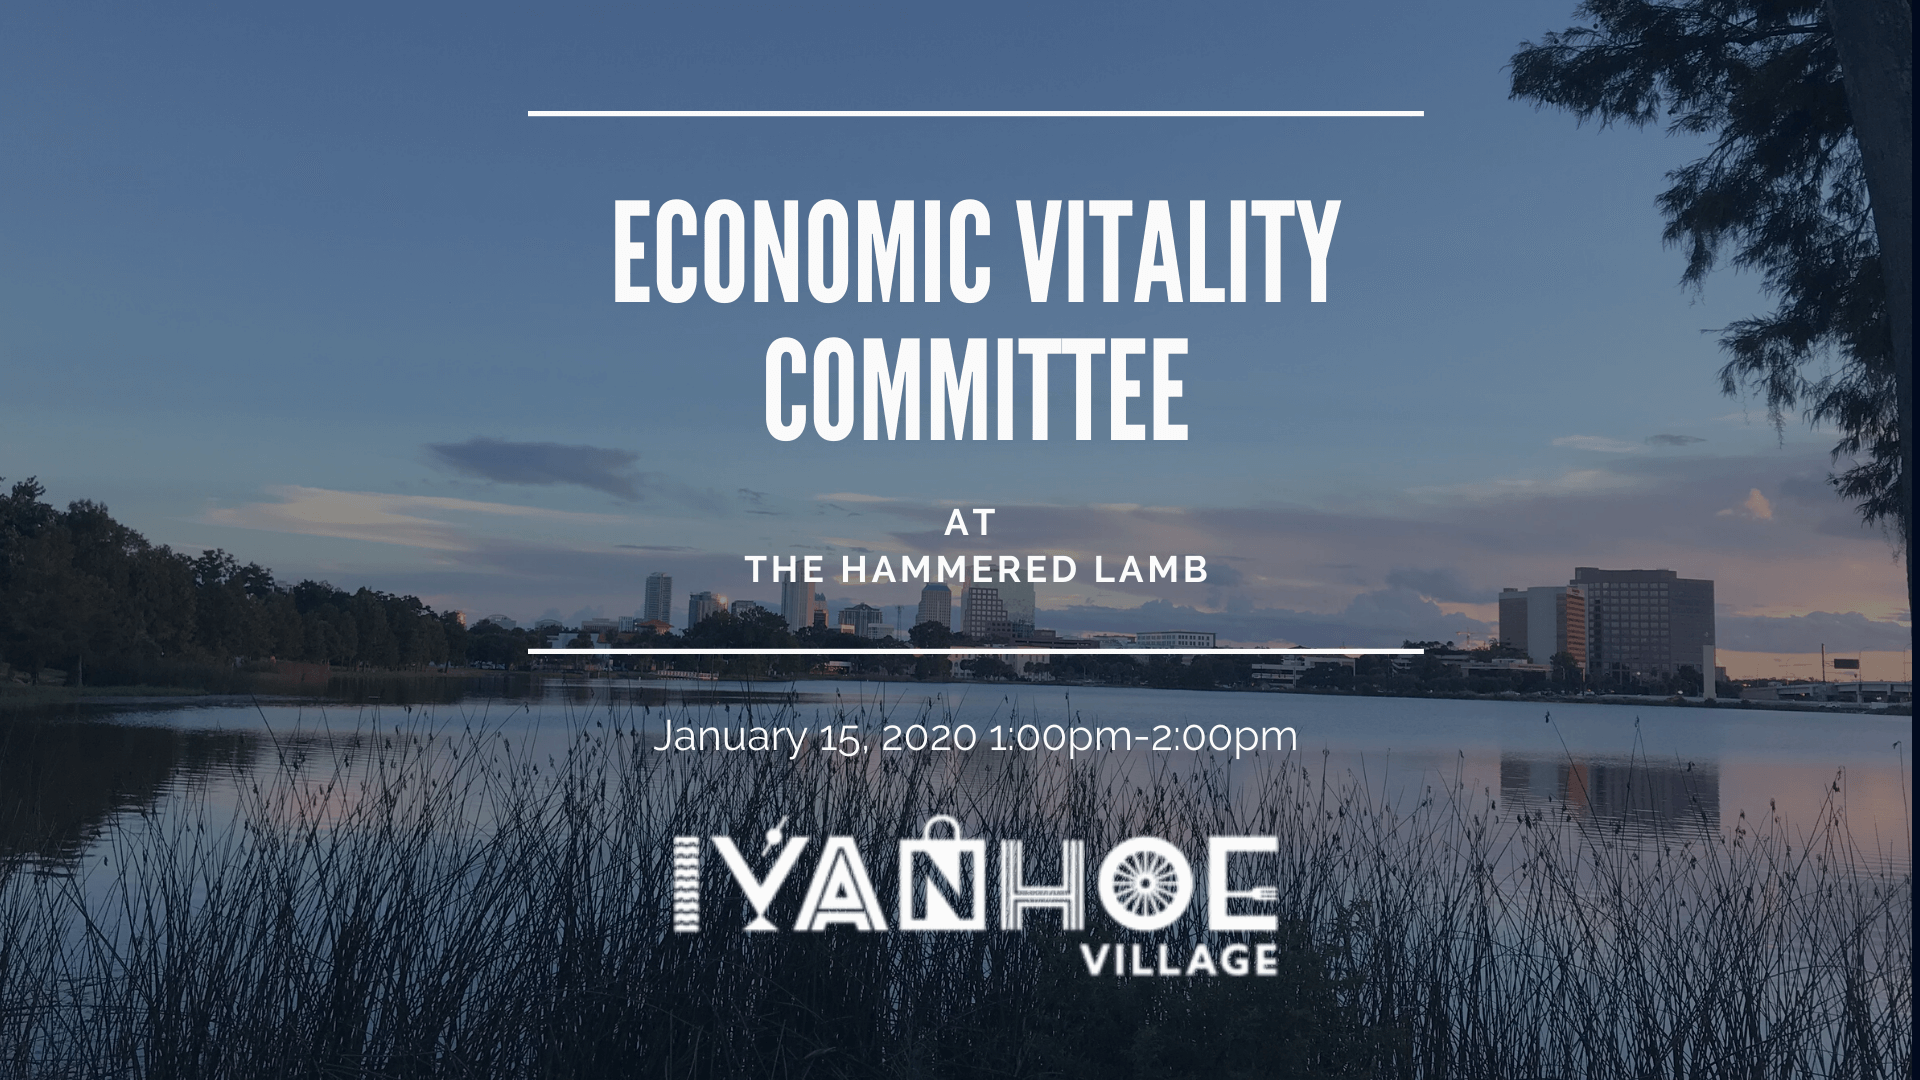 Economic Vitality Committee Event Banner